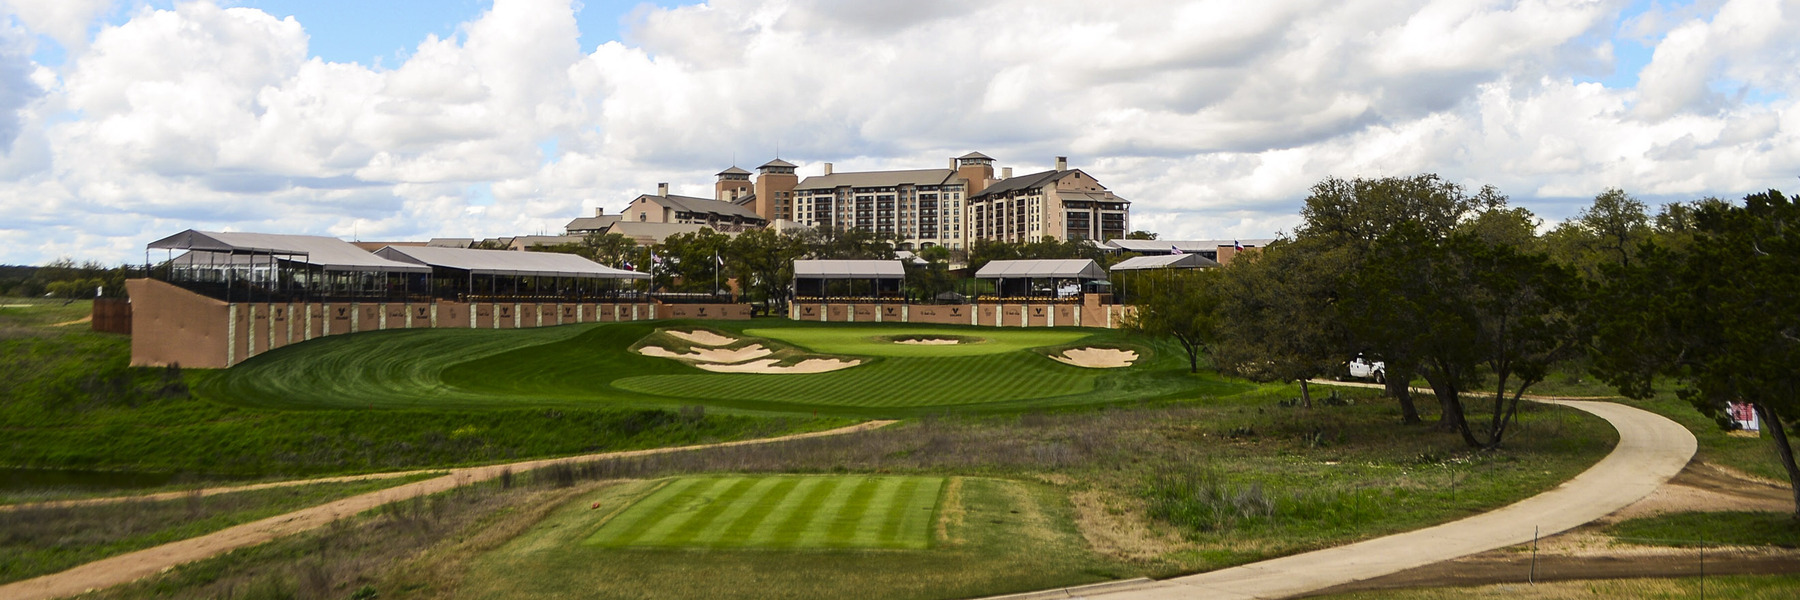 Golf Vacation Package - La Cantera Resort + TPC Oaks and Canyons, and The Quarry for $279!